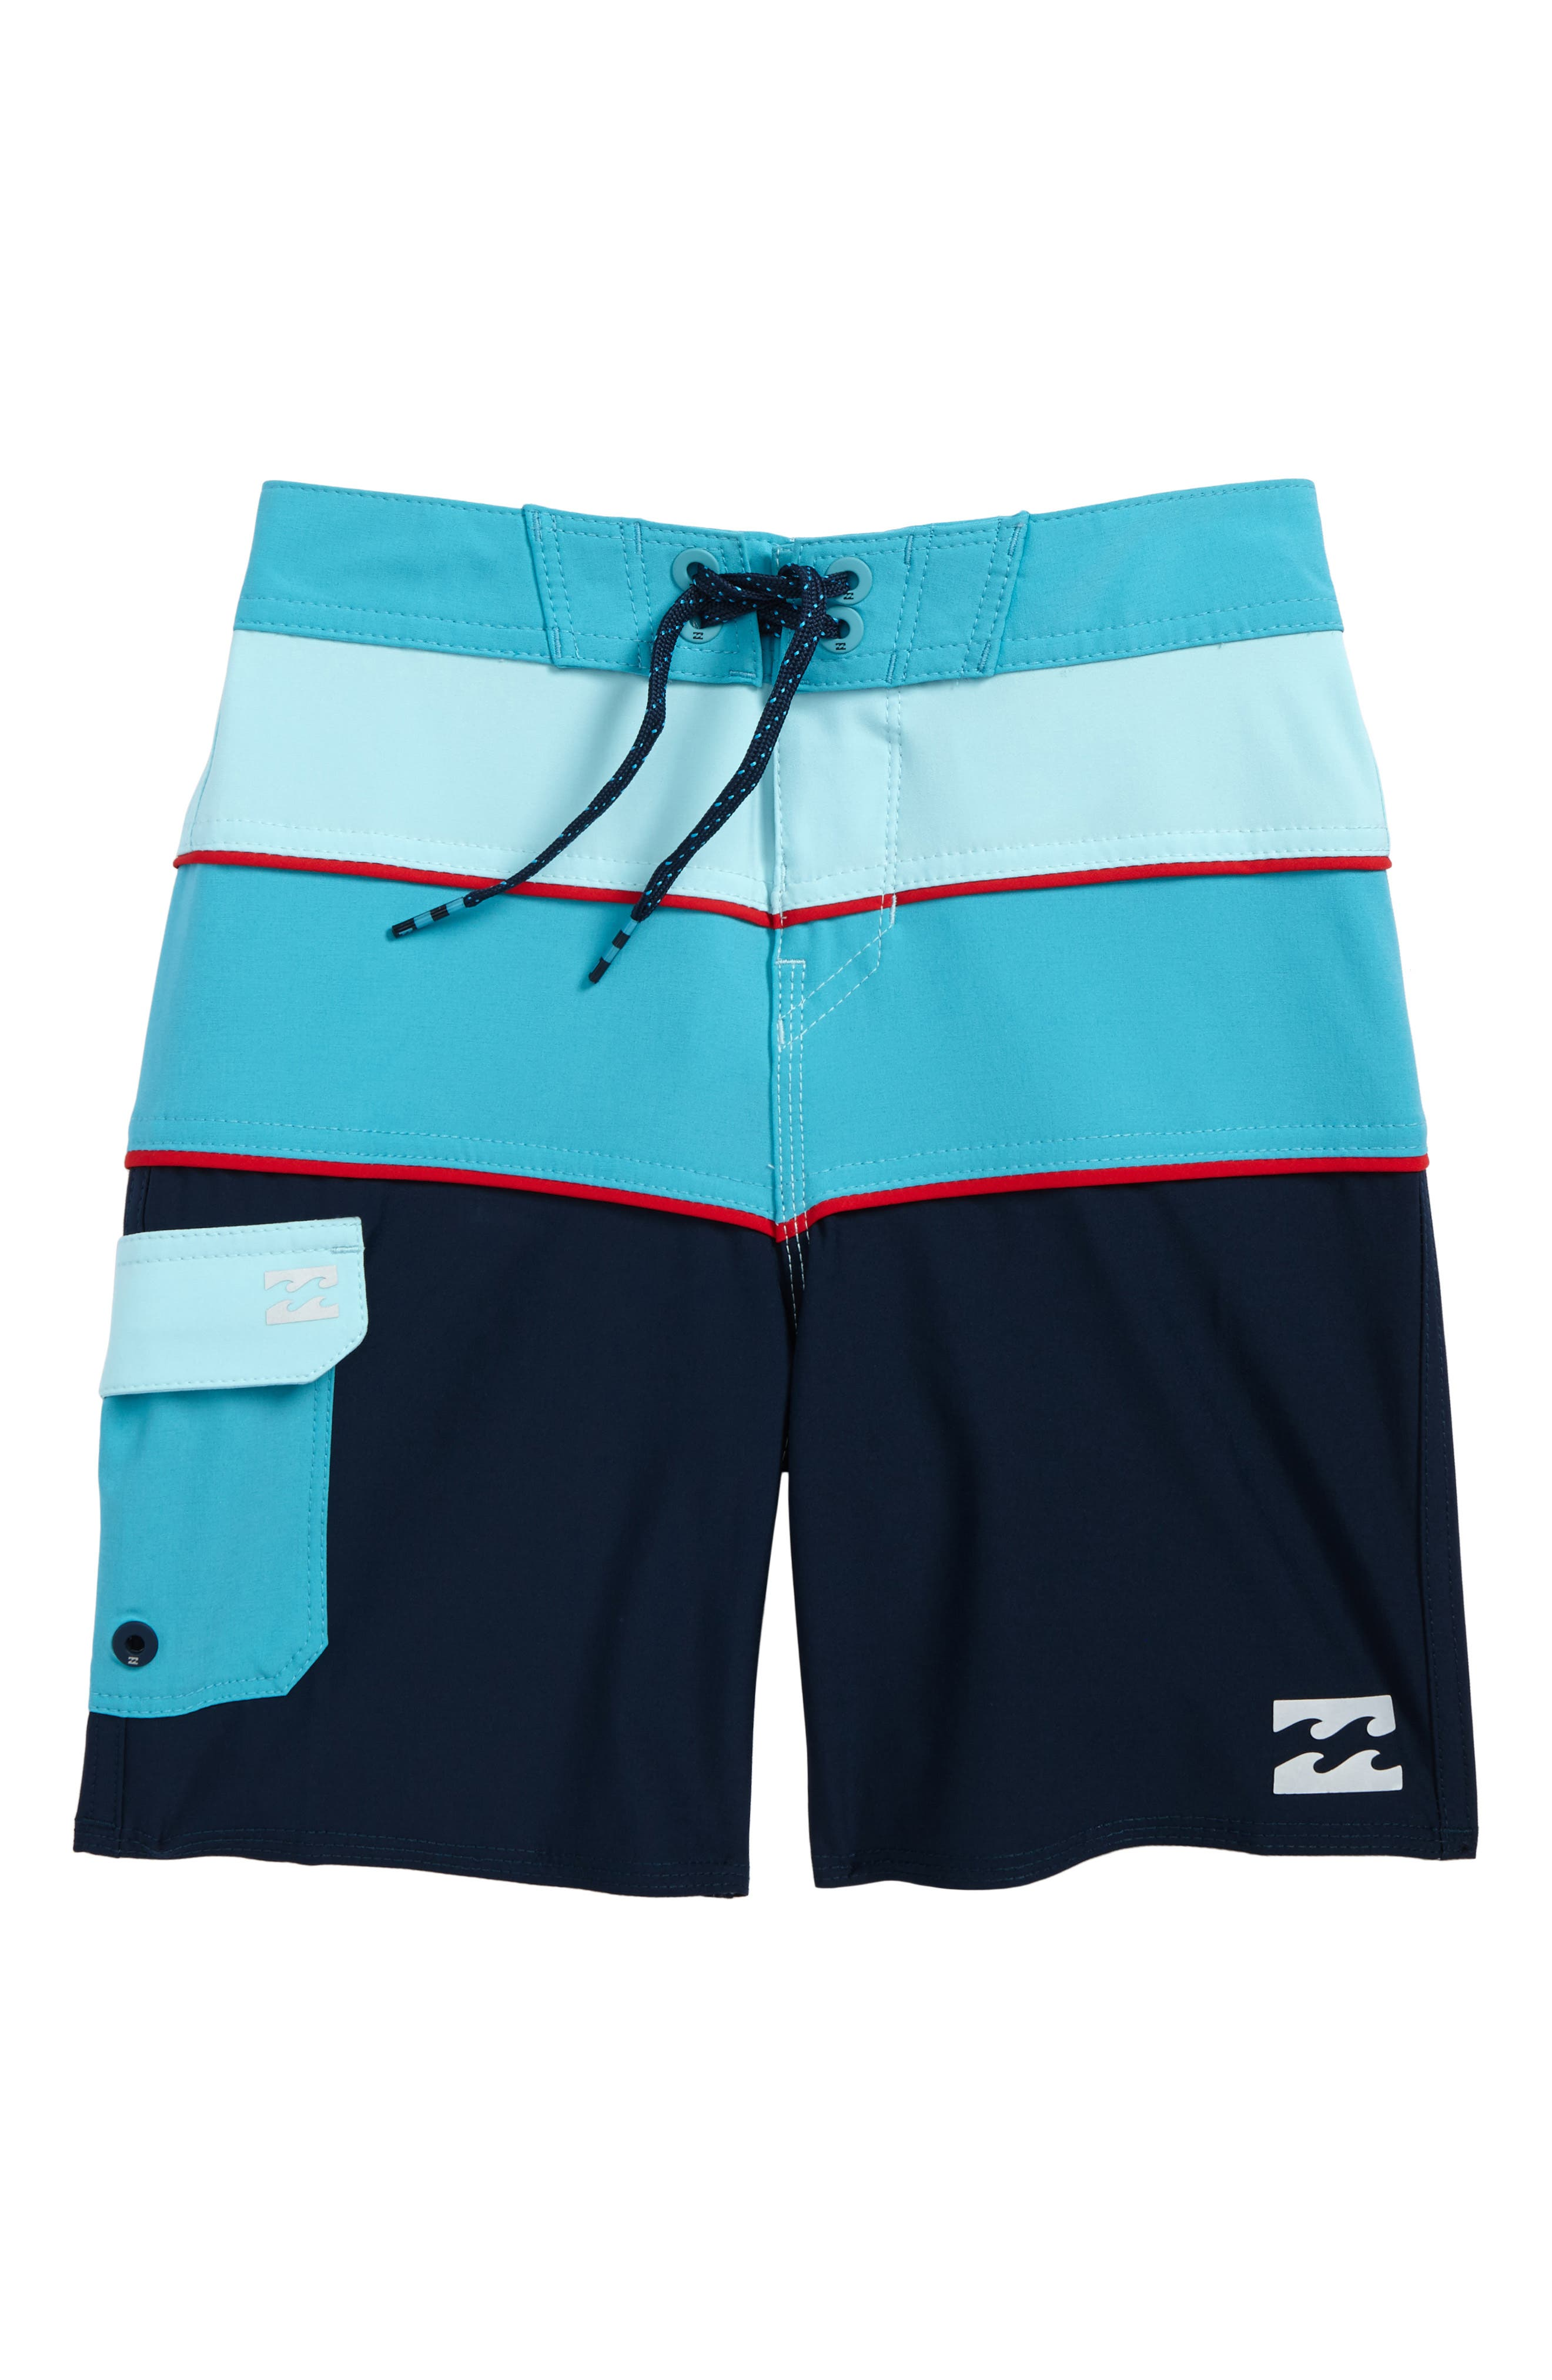 Billabong Tribong X Board Shorts (Toddler Boys & Little Boys)